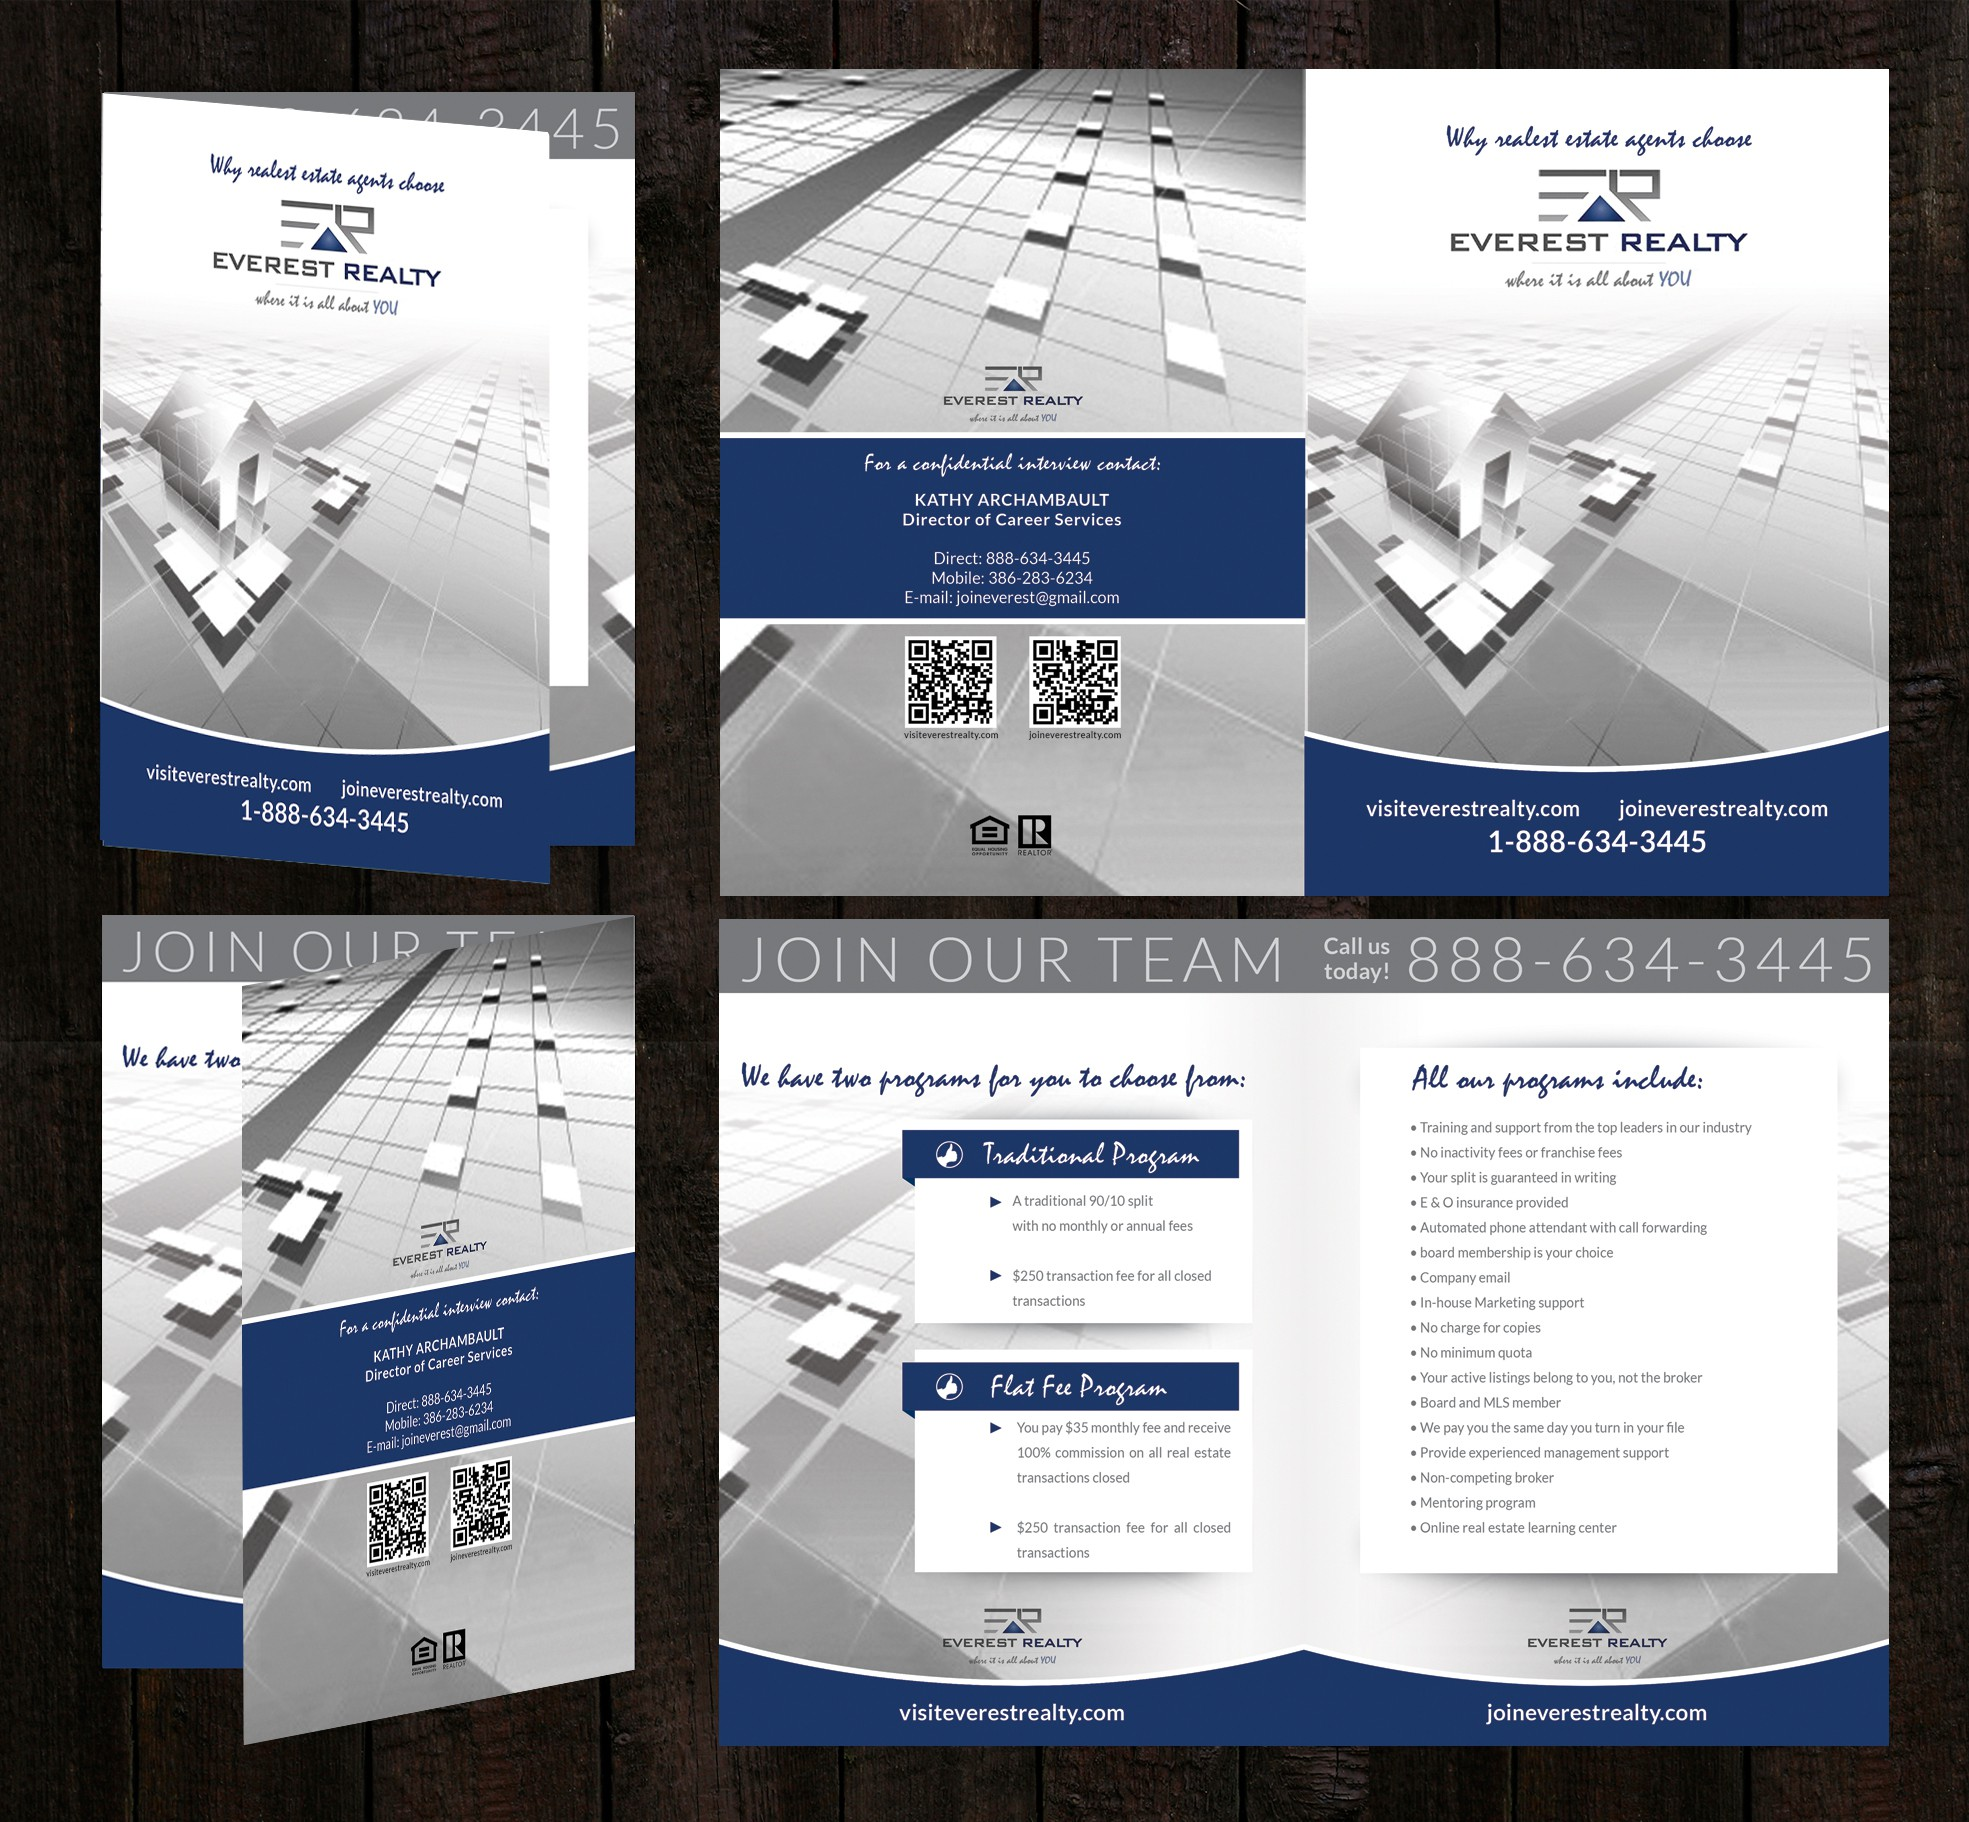 Everest Realty needs a new brochure design